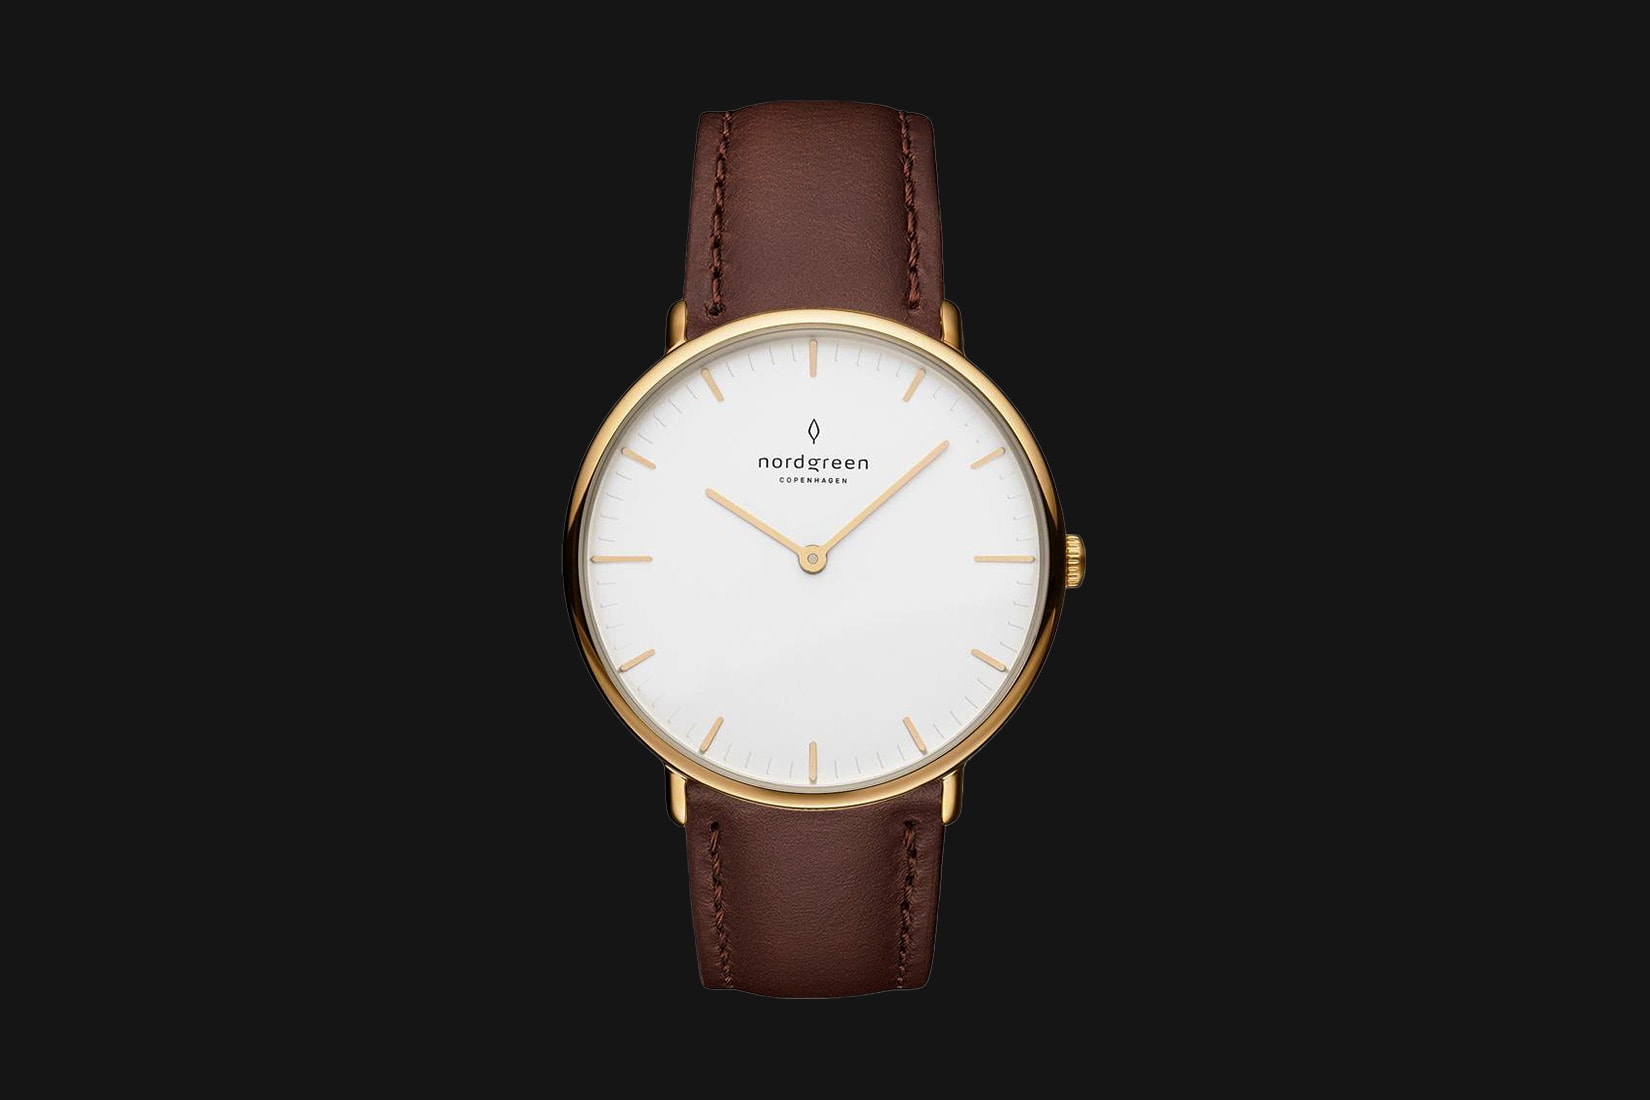 best dress watches nordgreen native review - Luxe Digital